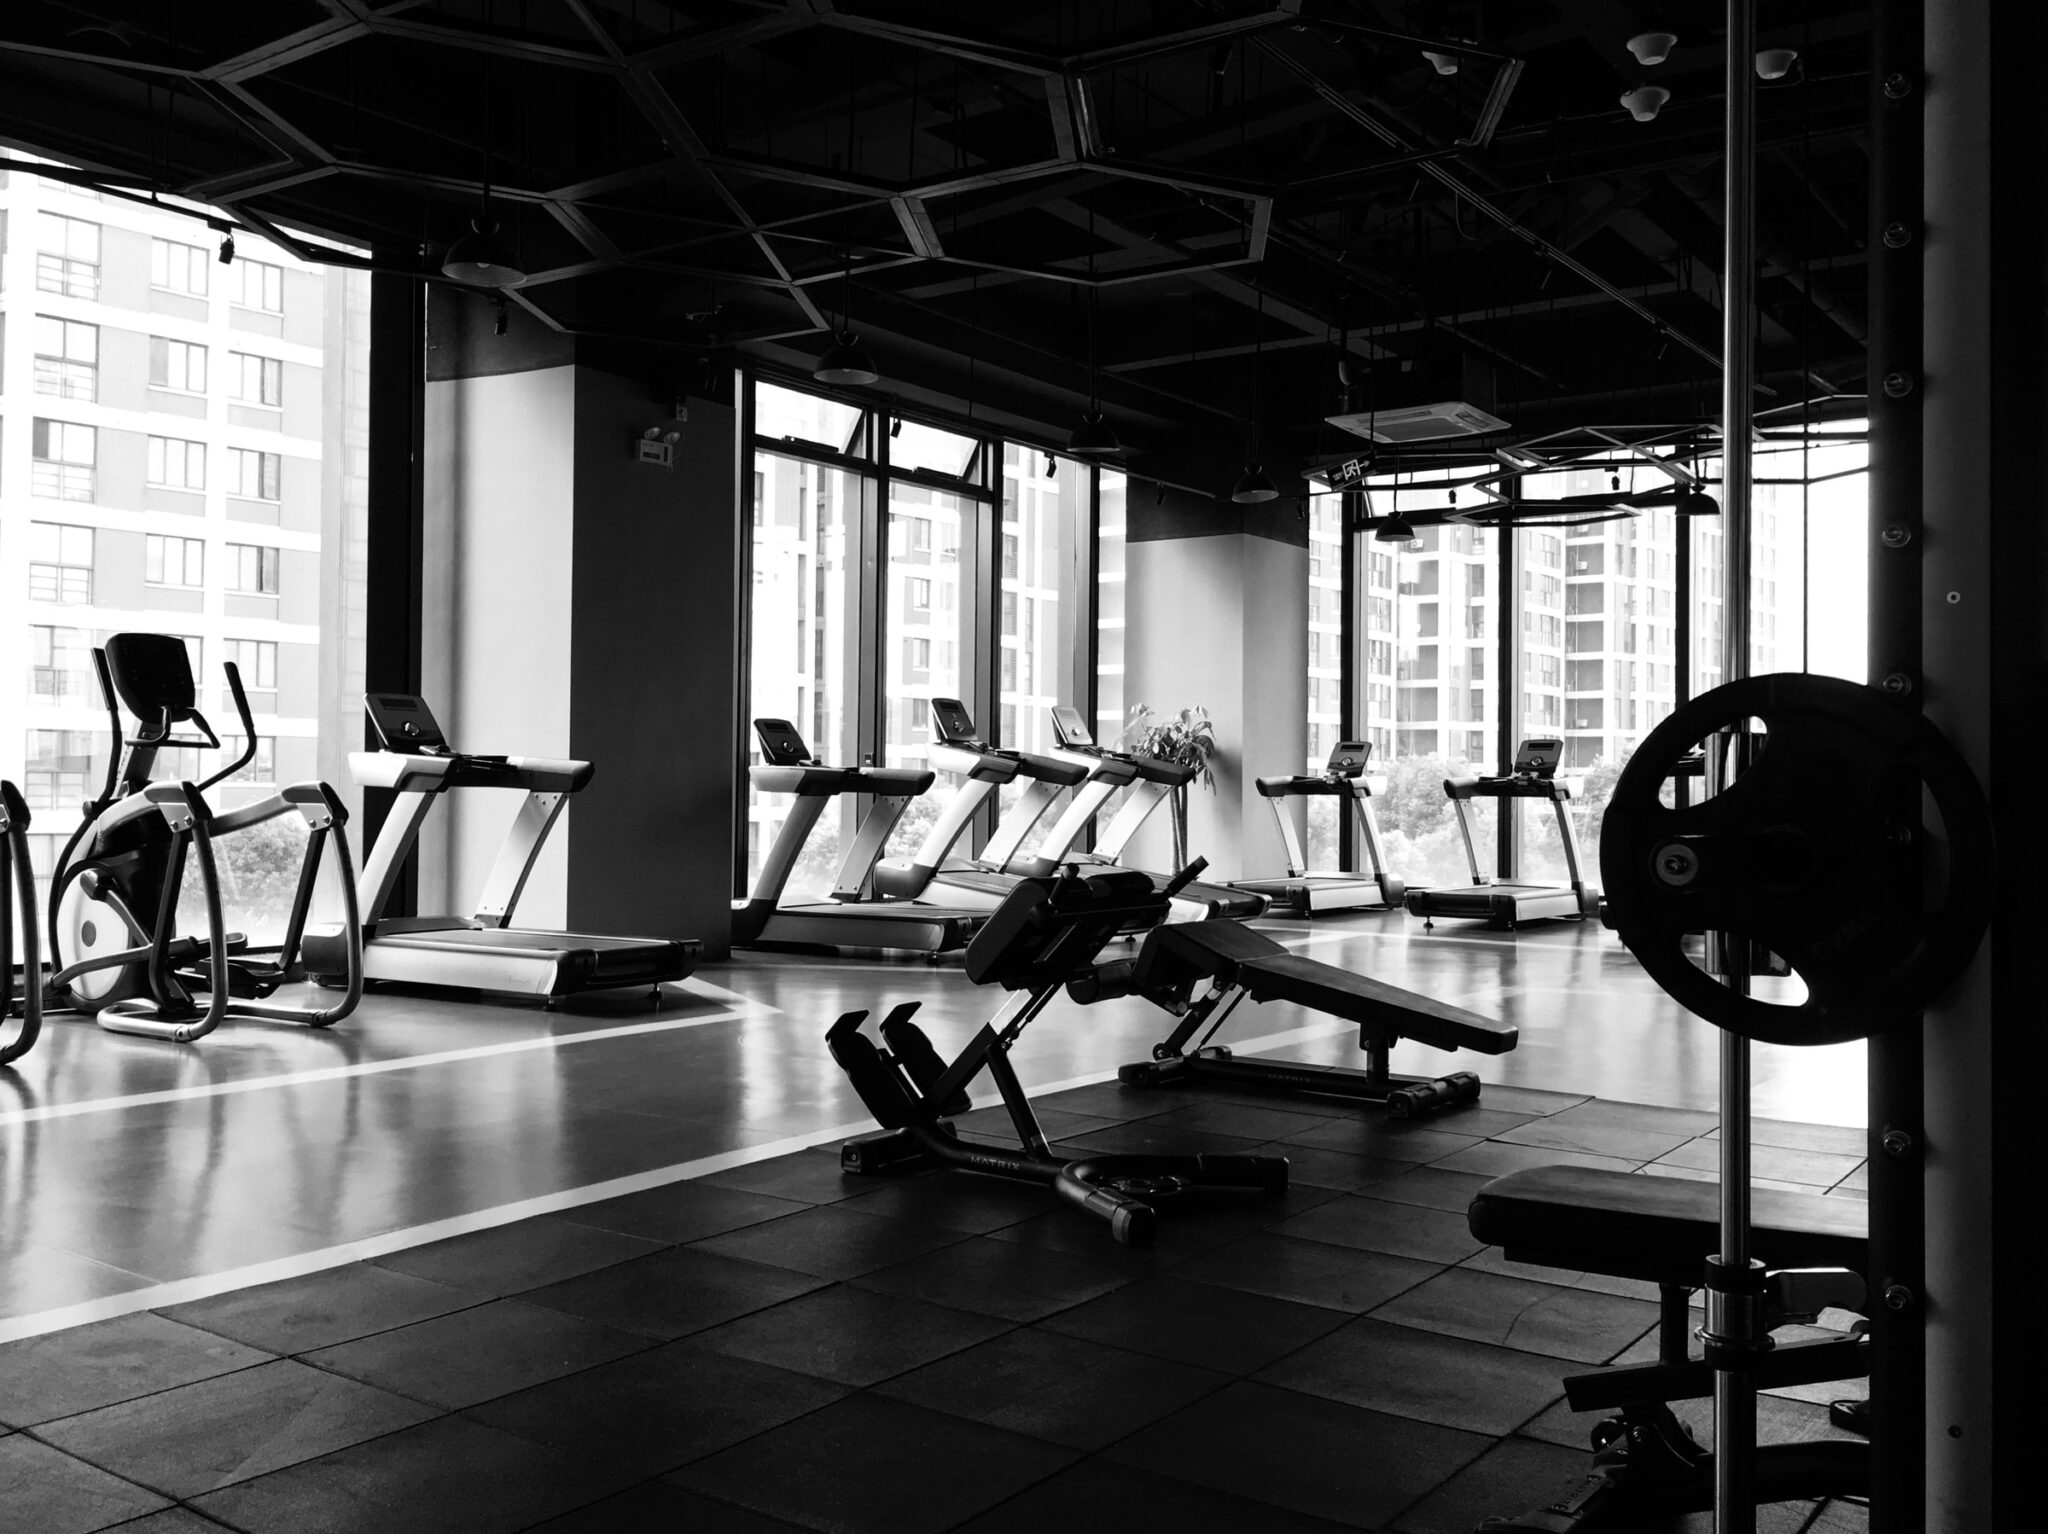 How Much Does It Cost to Move Gym Equipment to Another State? 2021 Guide